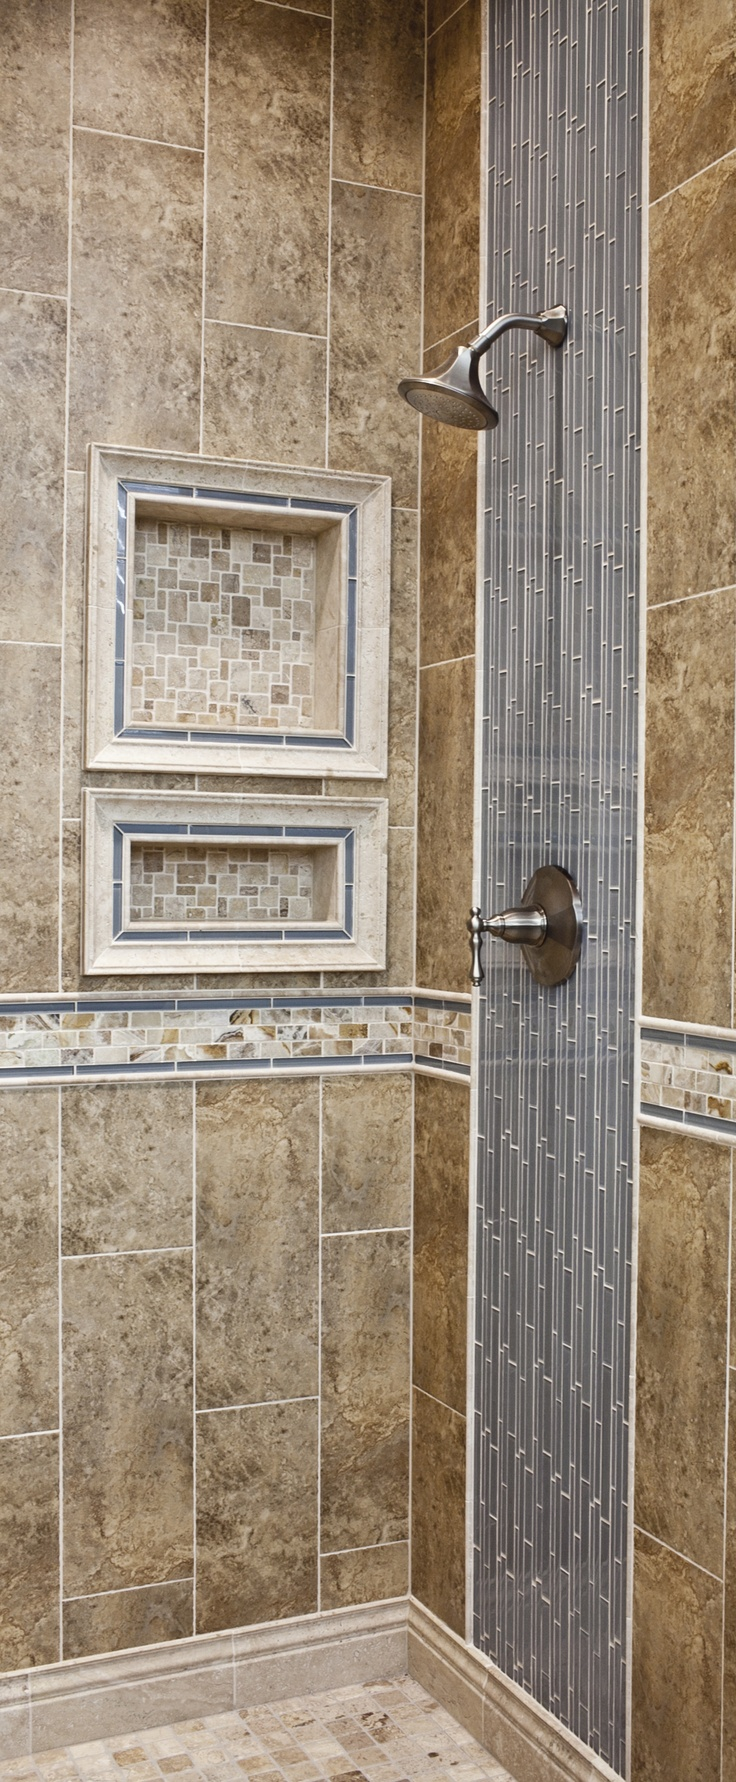 53 Best Images About Custom Tiled Showers On Pinterest